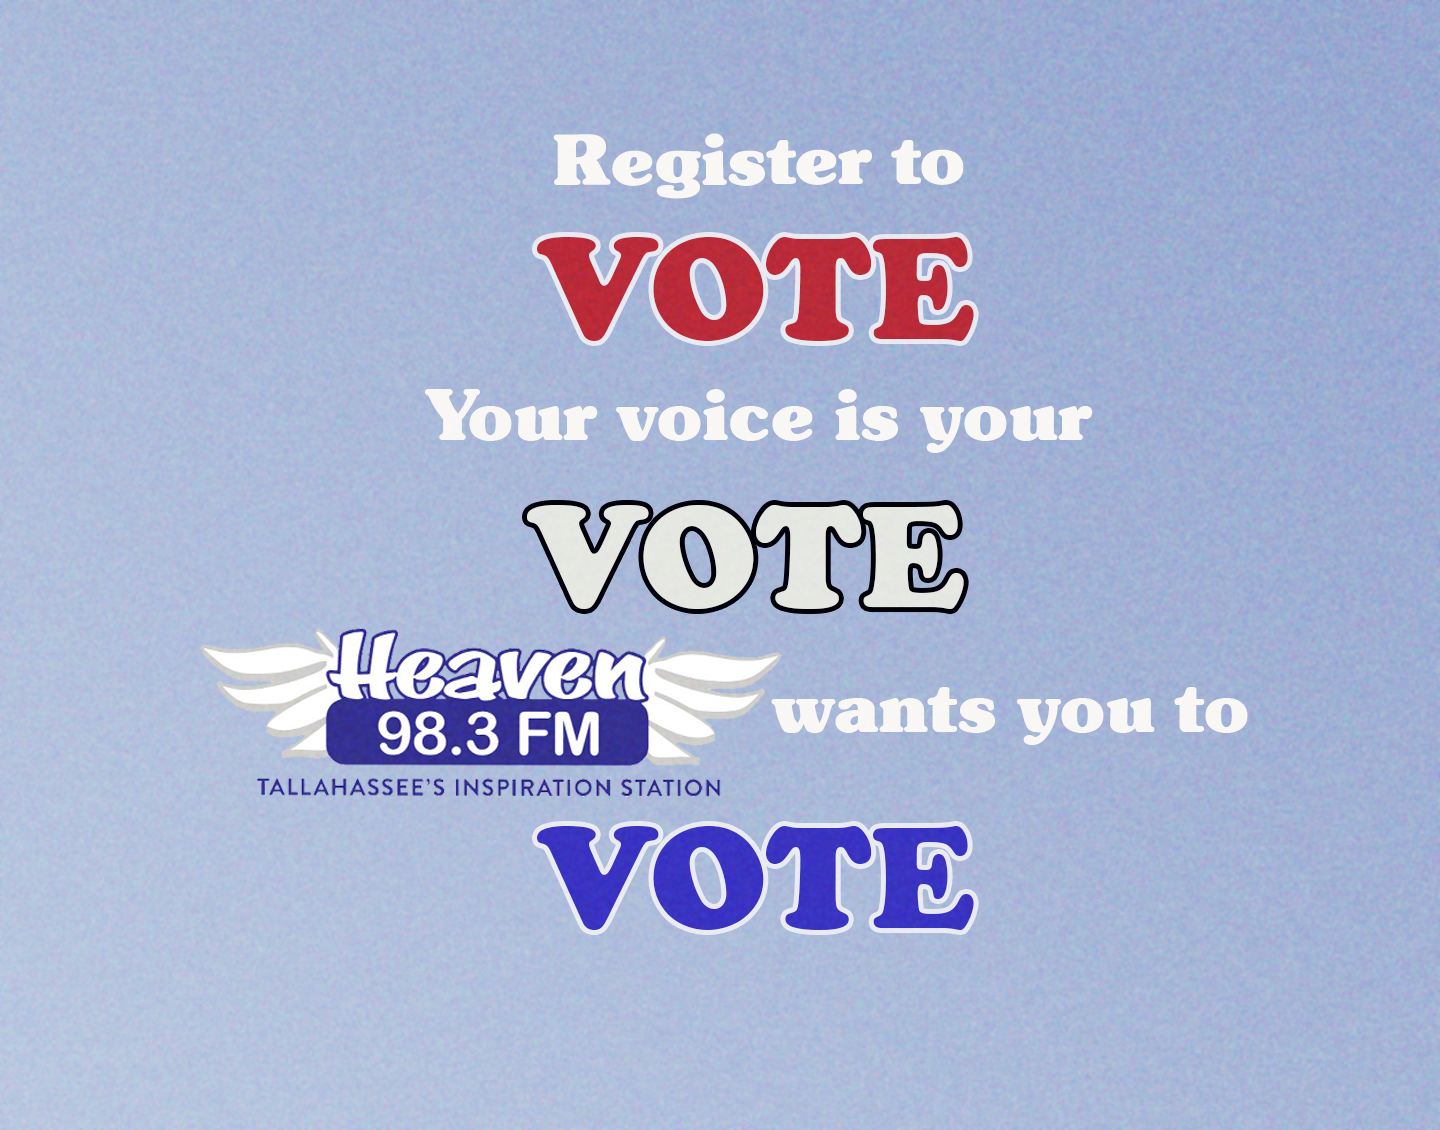 Heaven 98.3 wants you to VOTE!